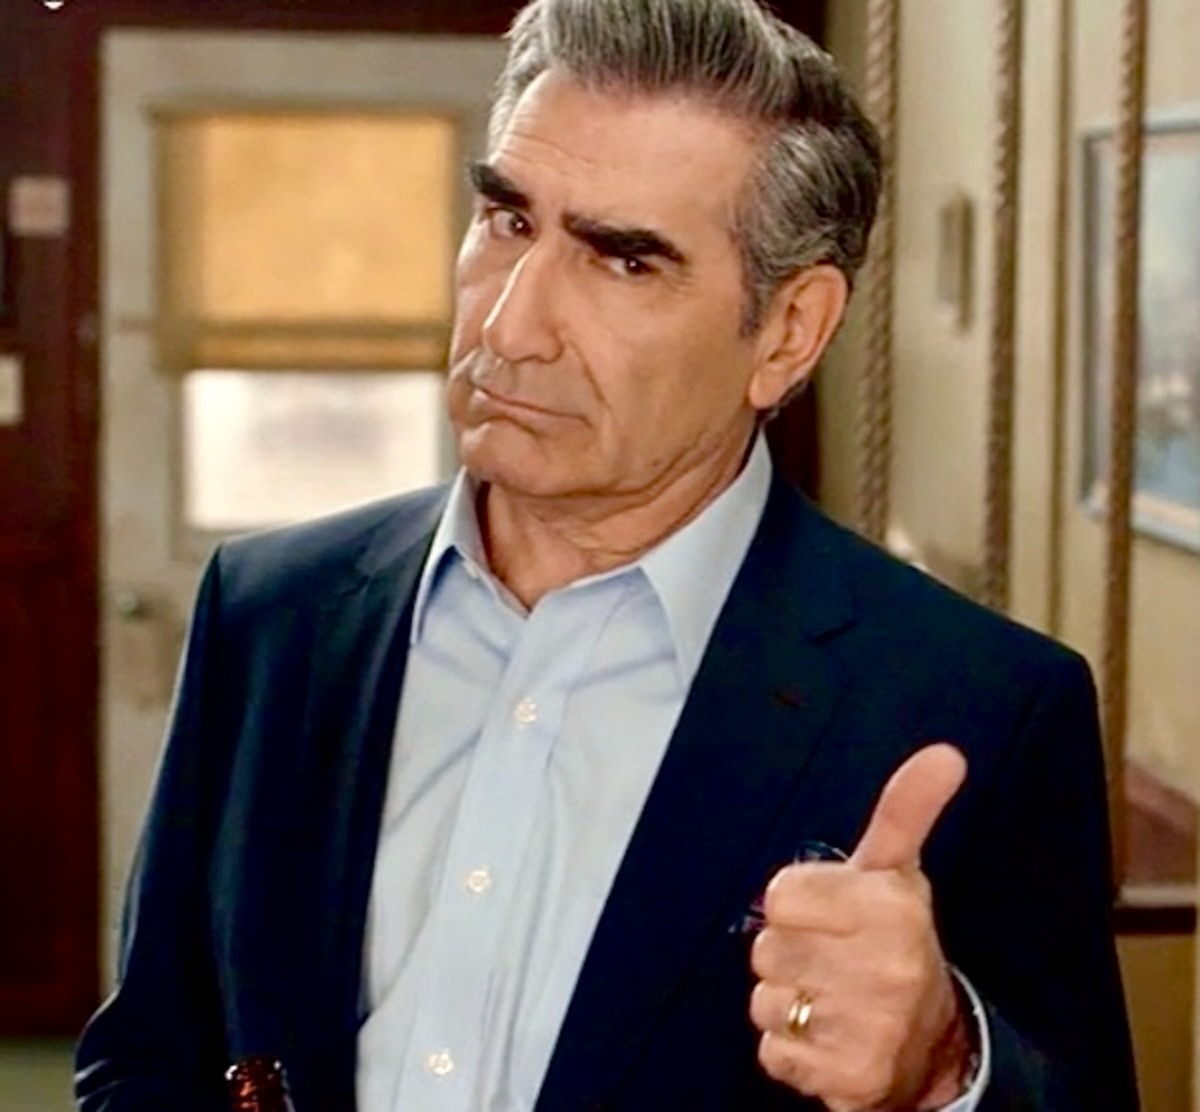 Johnny Rose giving a thumbs up on 'Schitt's Creek' for Father's Day cards inspired by the hit series.